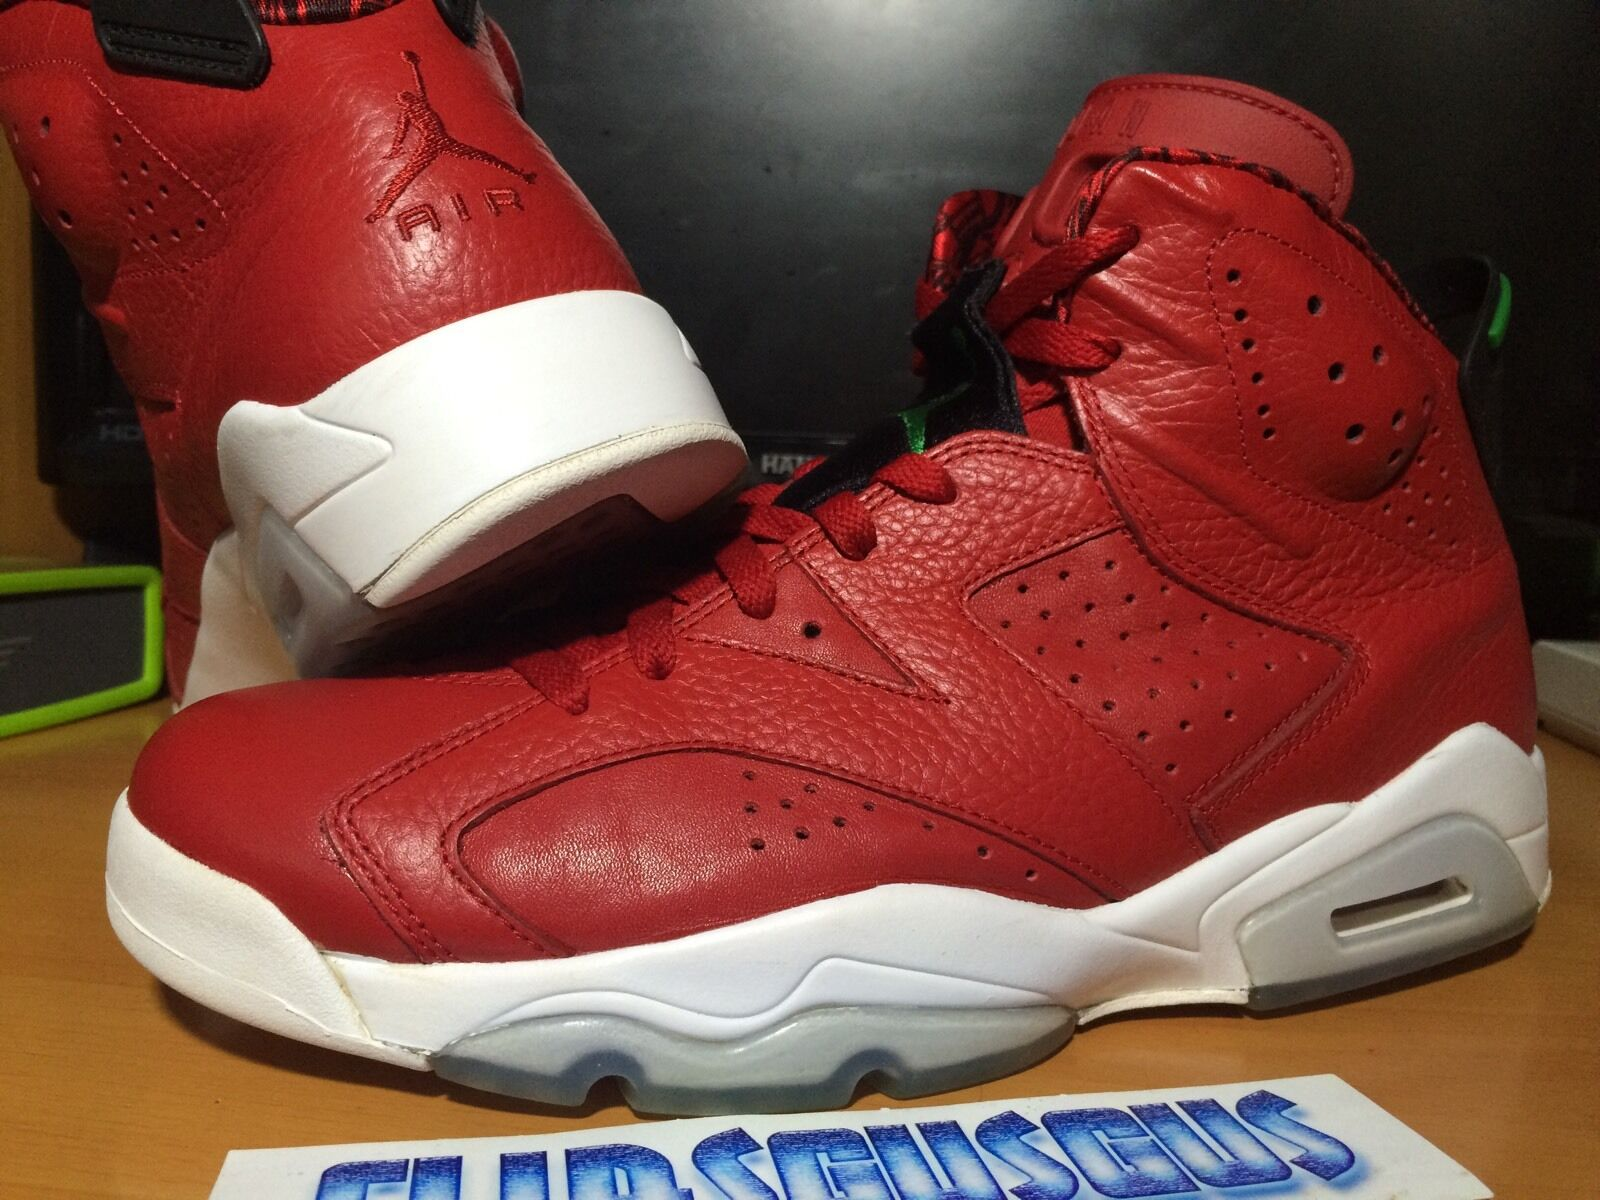 59626370f2ee1d Air Jordan 6 Spizike Red Size Size Size 9.5 (1 3 4 5 11 14 ...